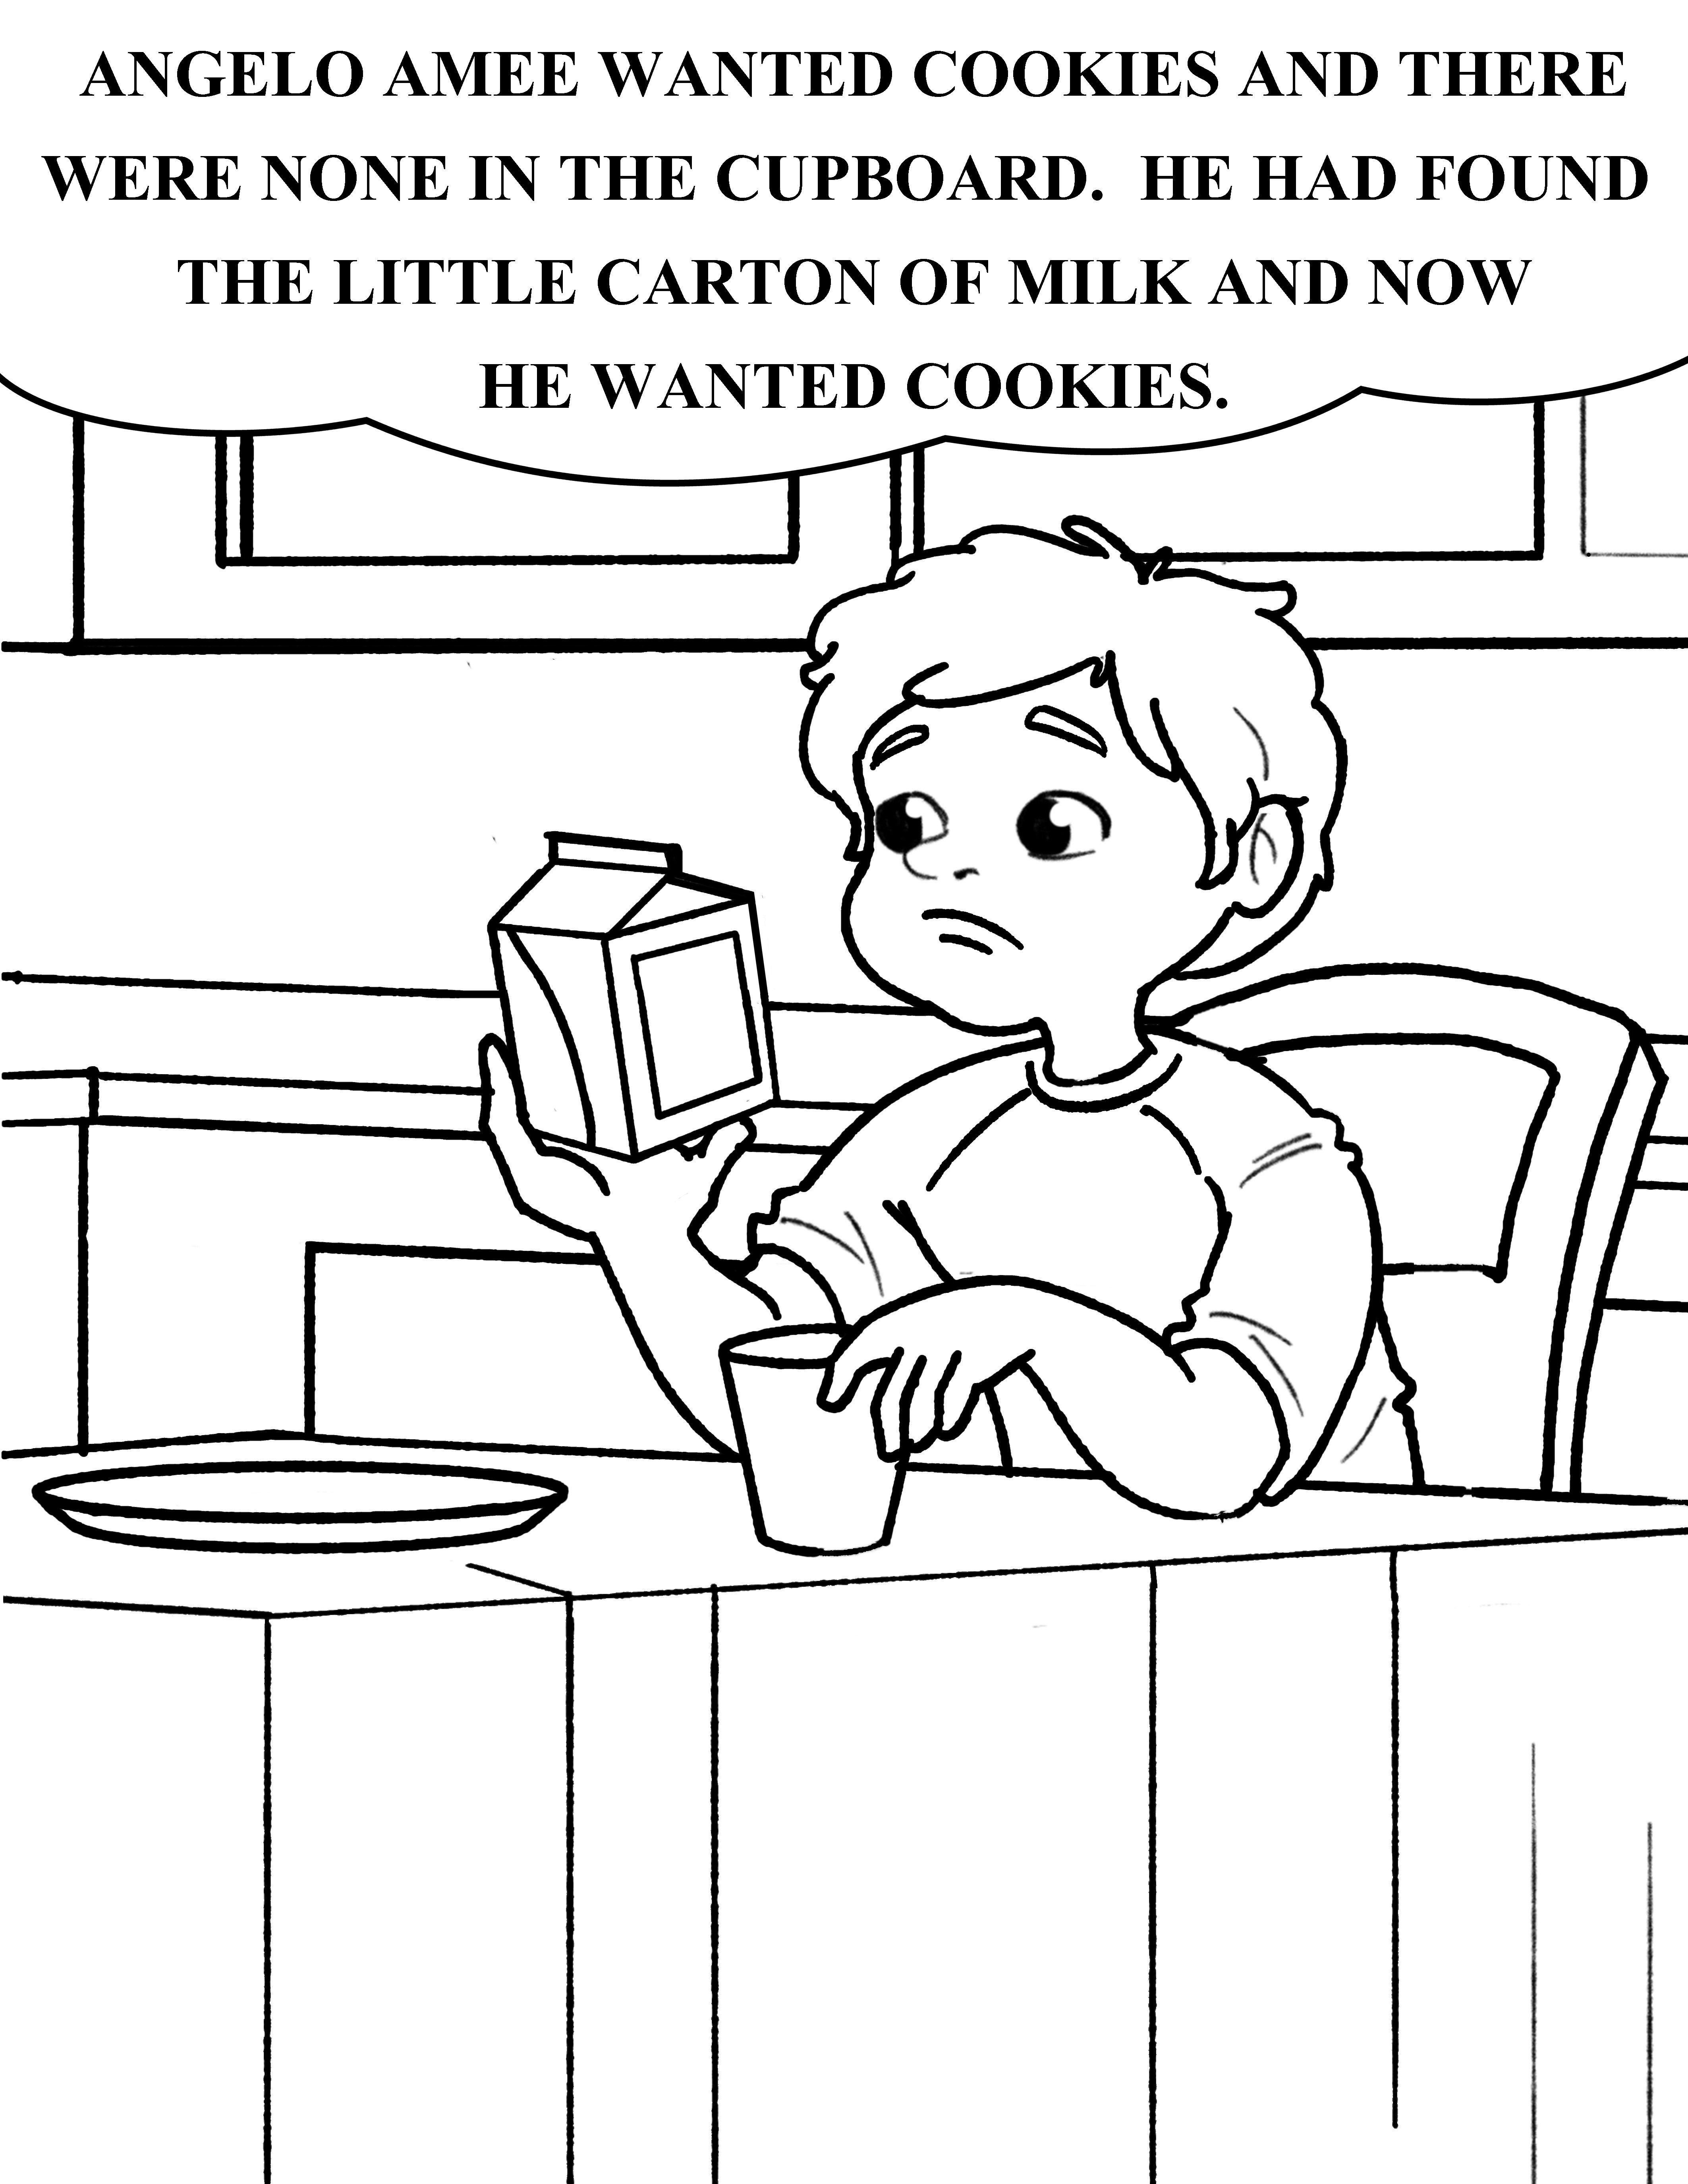 Bible coloring page about God